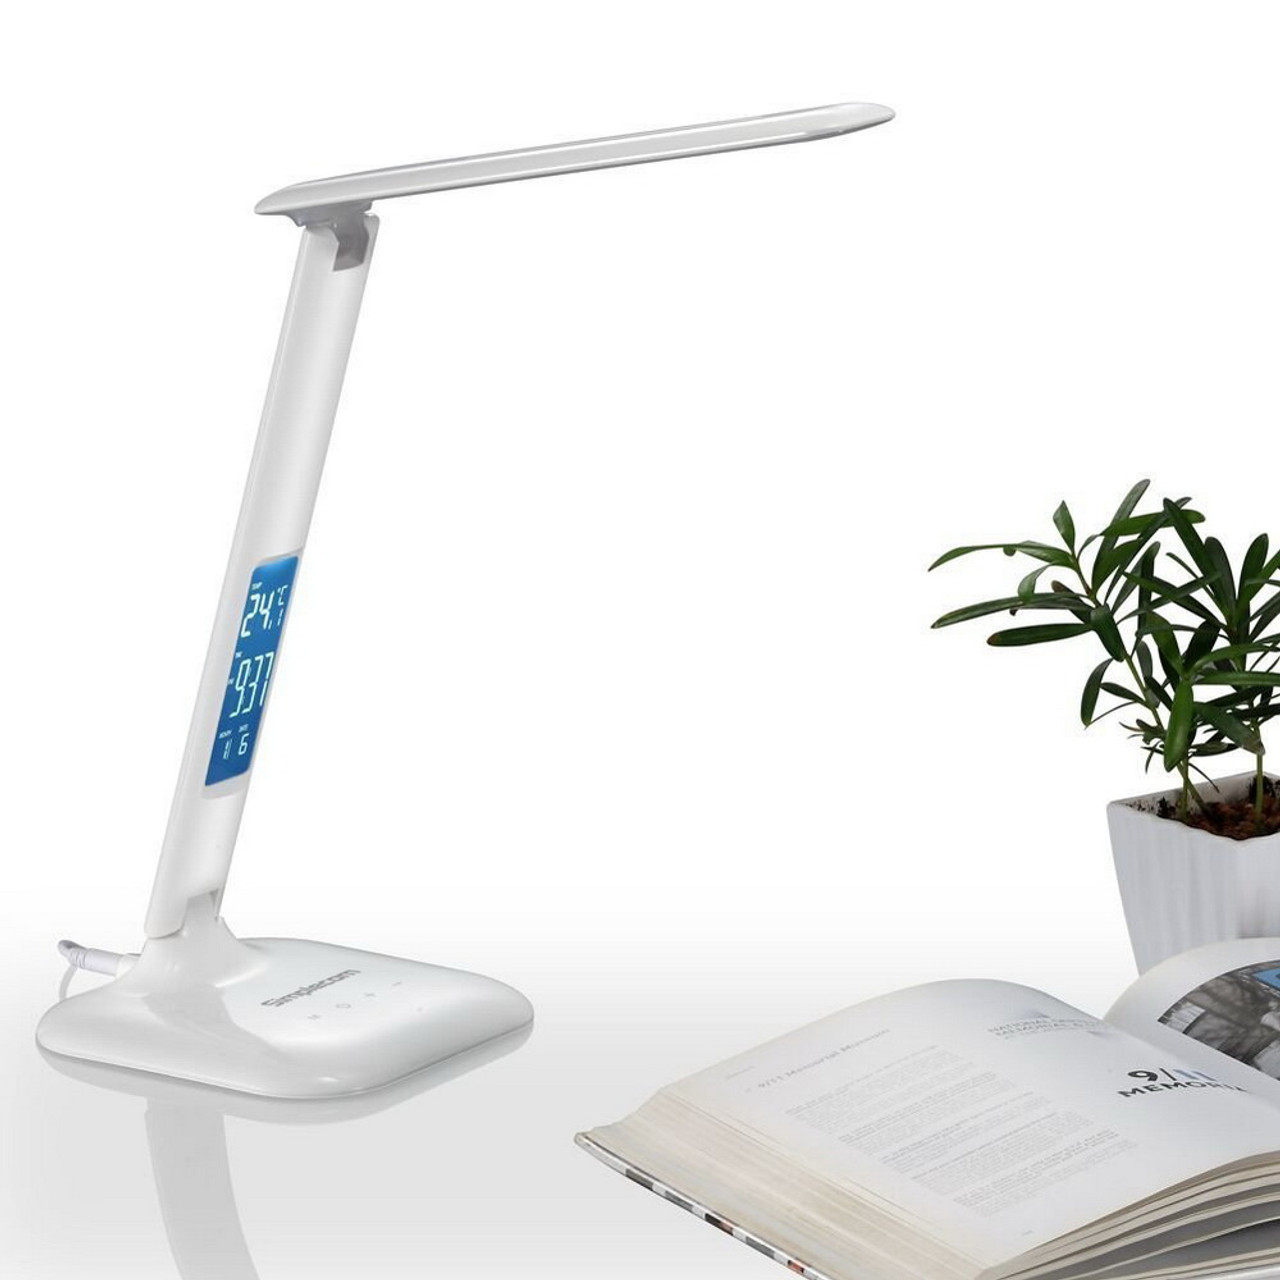 Product image for Simplecom EL808 Dimmable Touch Control LED Desk Lamp | CX Computer Superstore